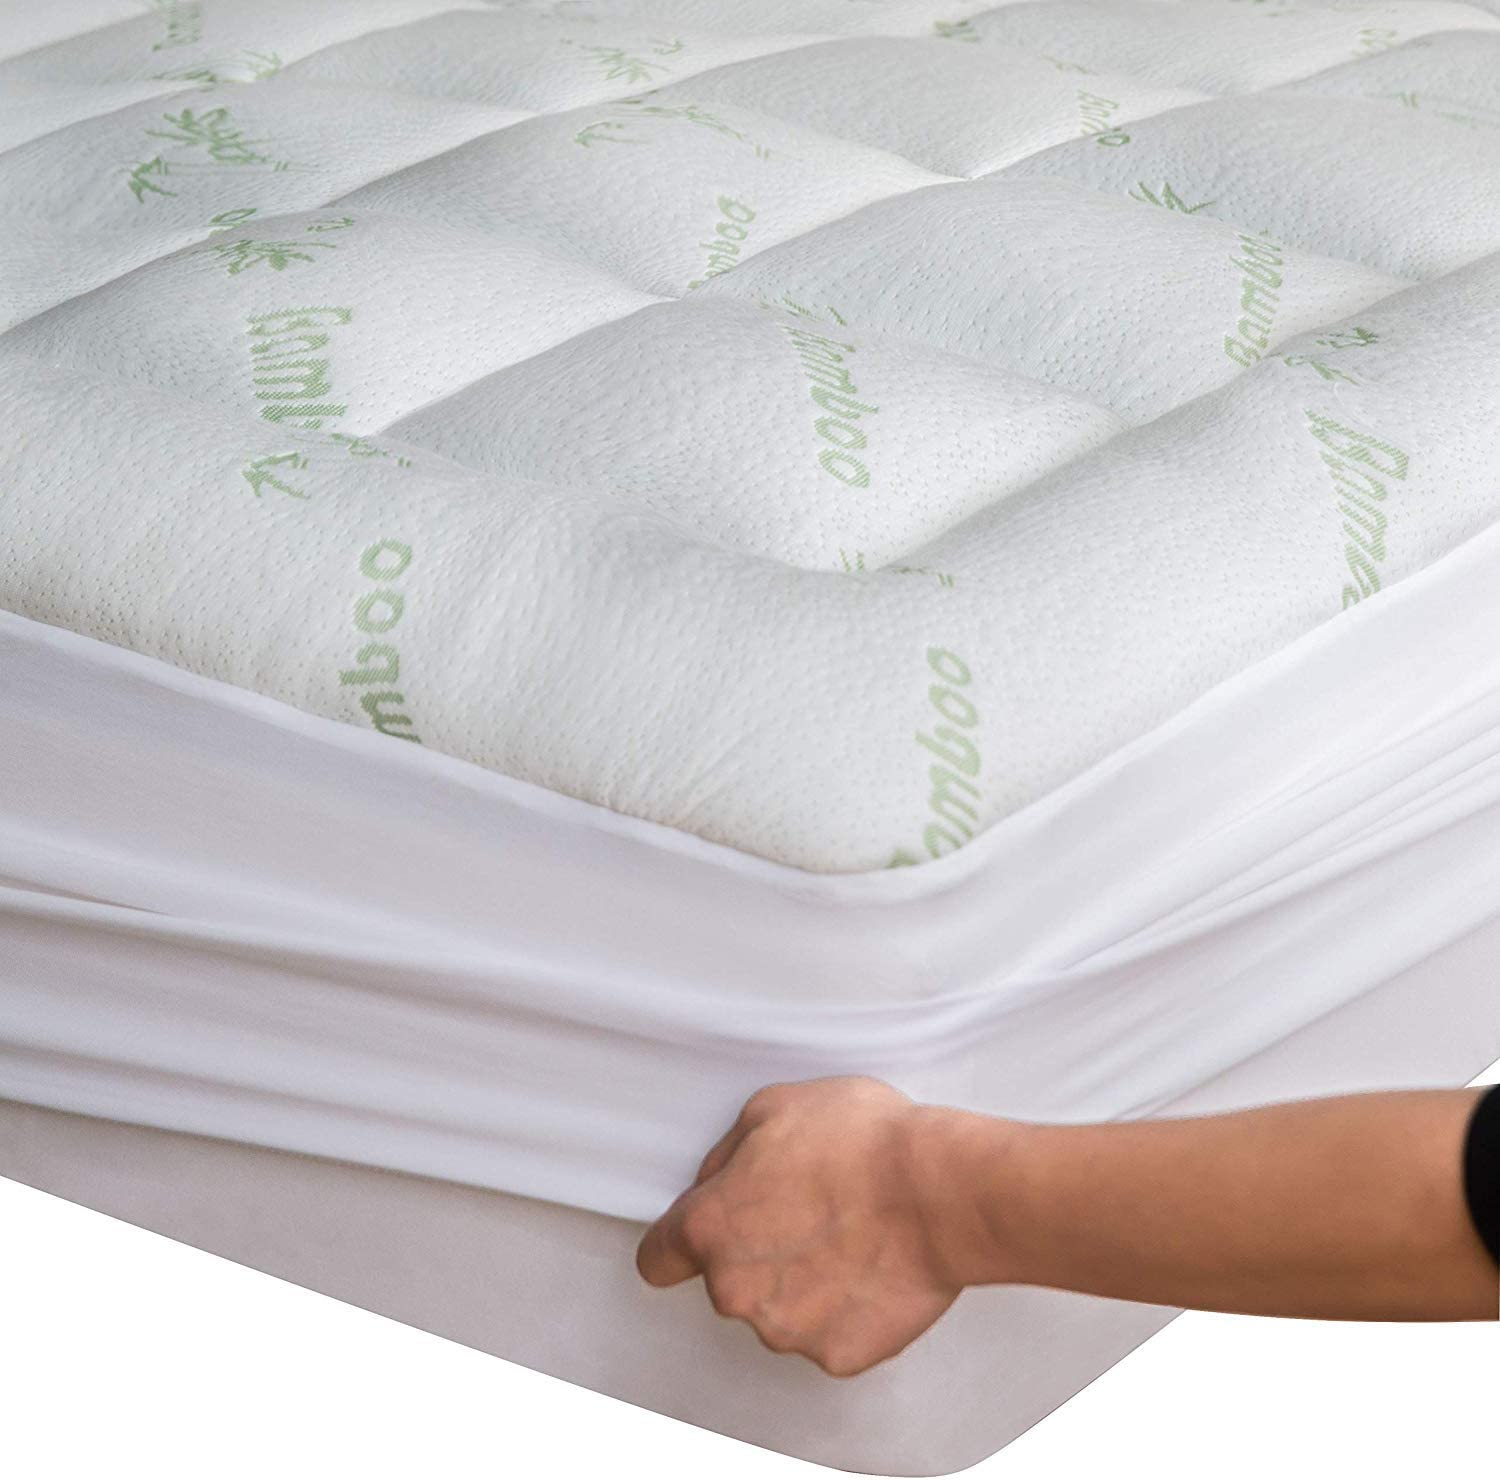 Niagara Sleep Solution Bamboo Mattress Topper Full XL 54X80X15 inches Cooling Breathable Extra Plush Thick Fitted 20Inches Pillow Top Mattress Pad Rayon Cooling Ultra Soft (Bamboo, Full XL)